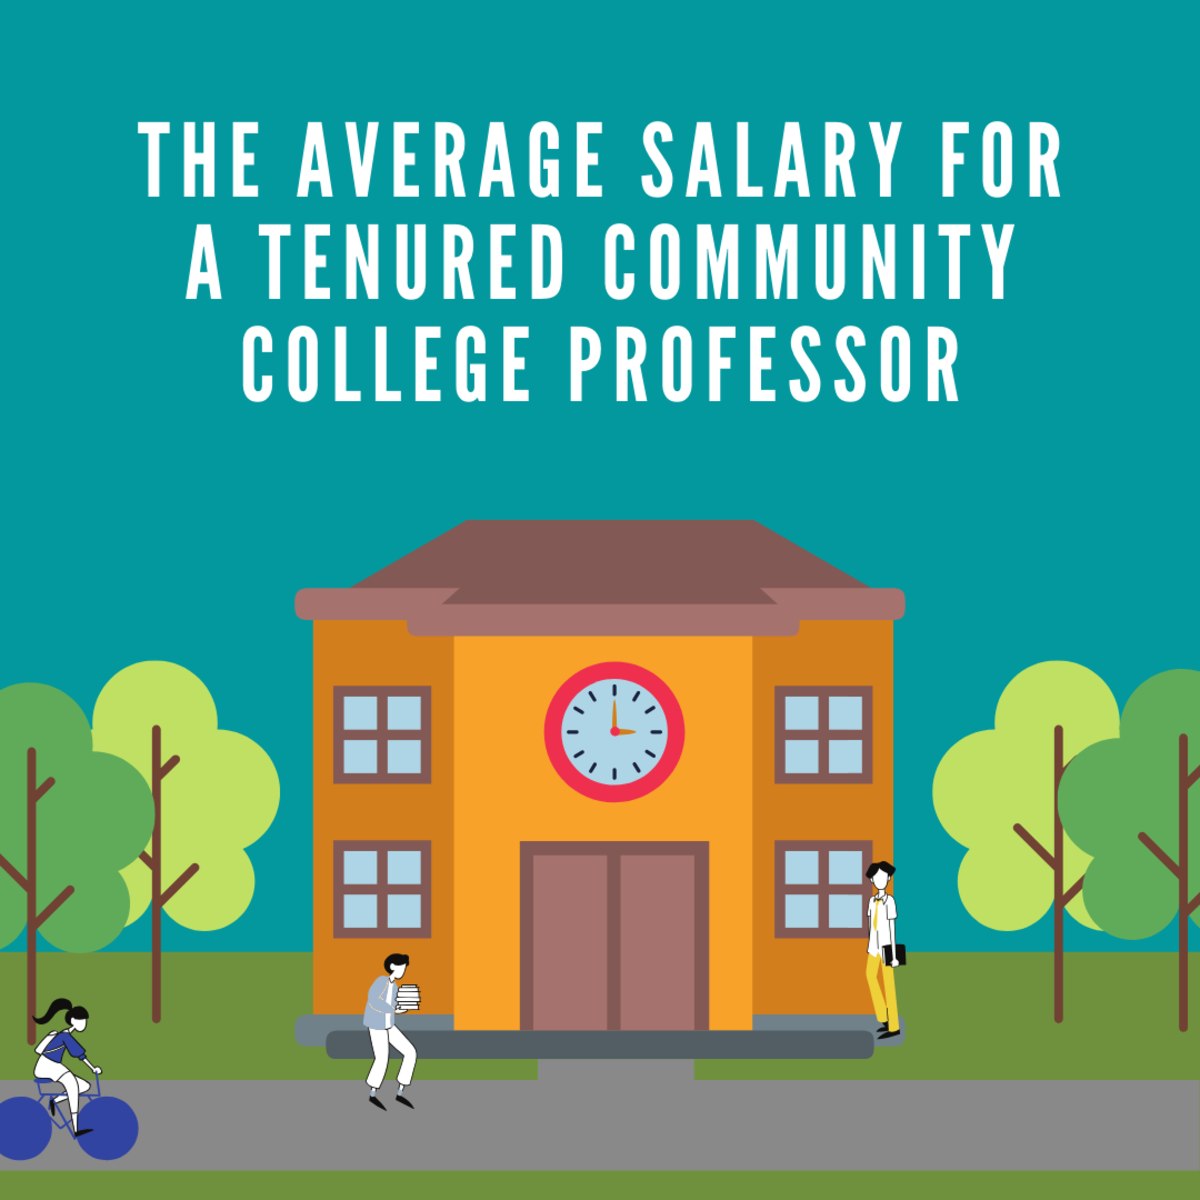 Learn all about what community colleges professors make on average.